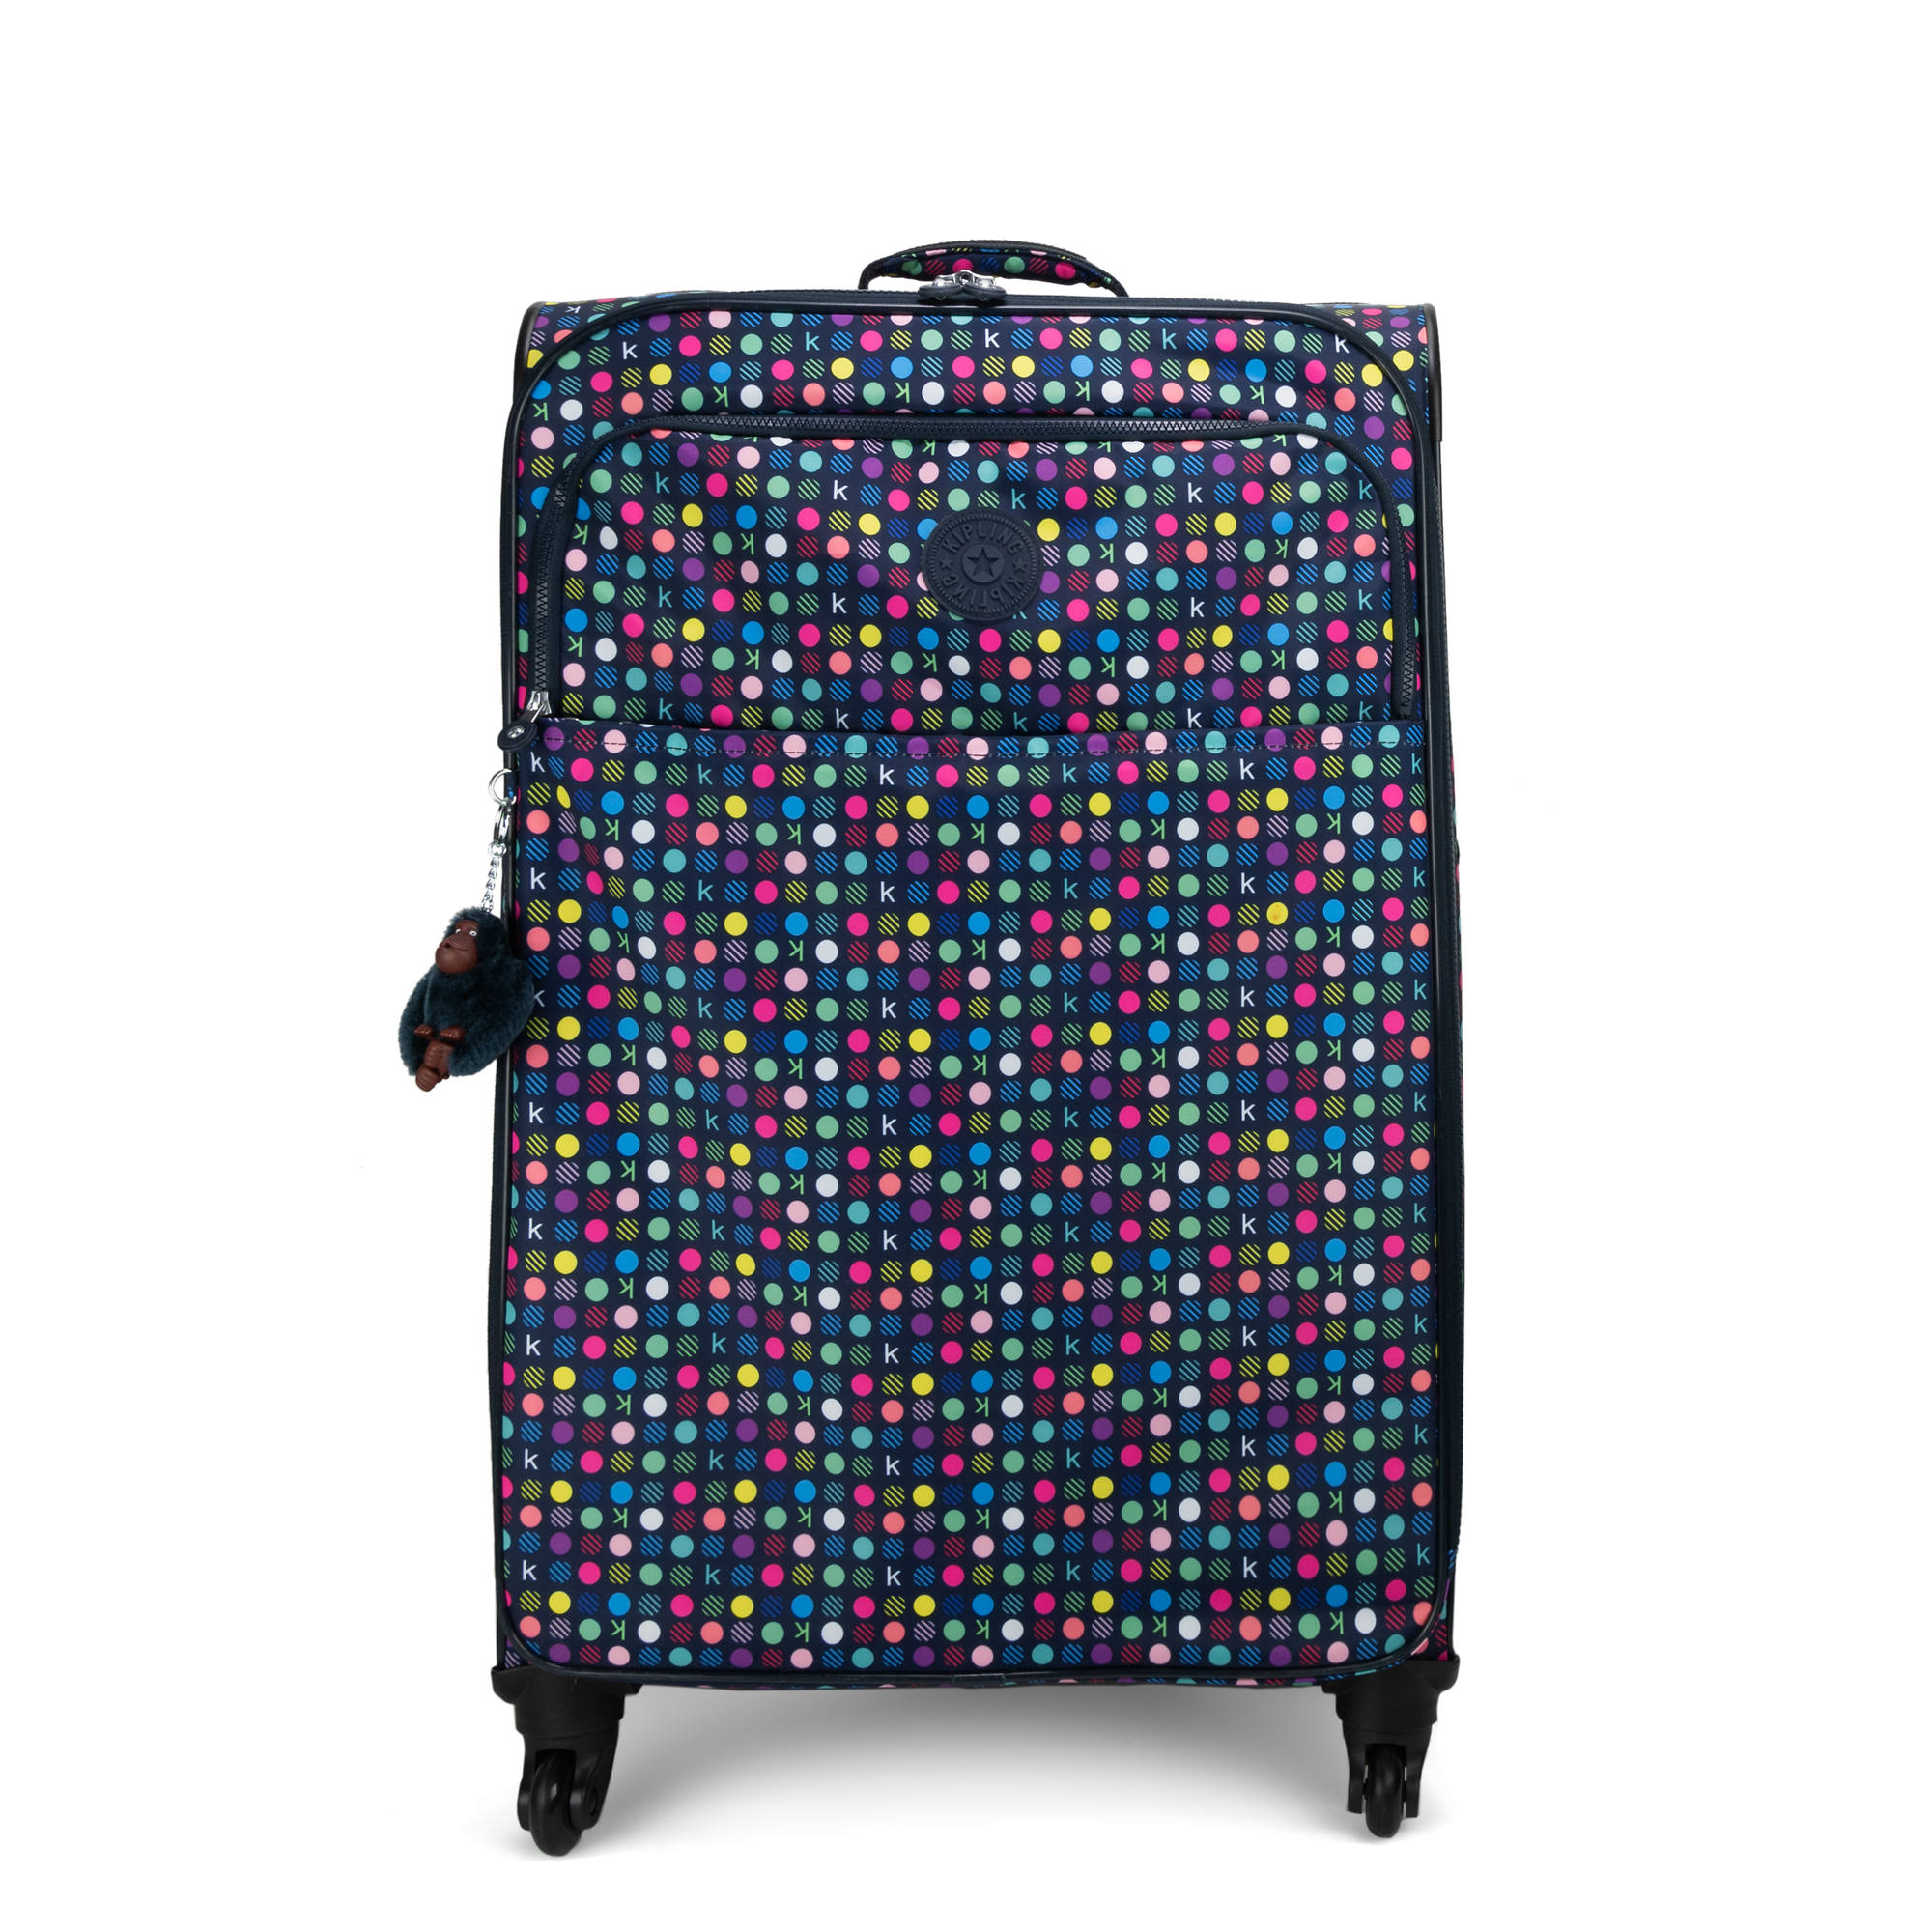 9e04a8b691 Parker Large Printed Rolling Luggage,K Multi Dot,large